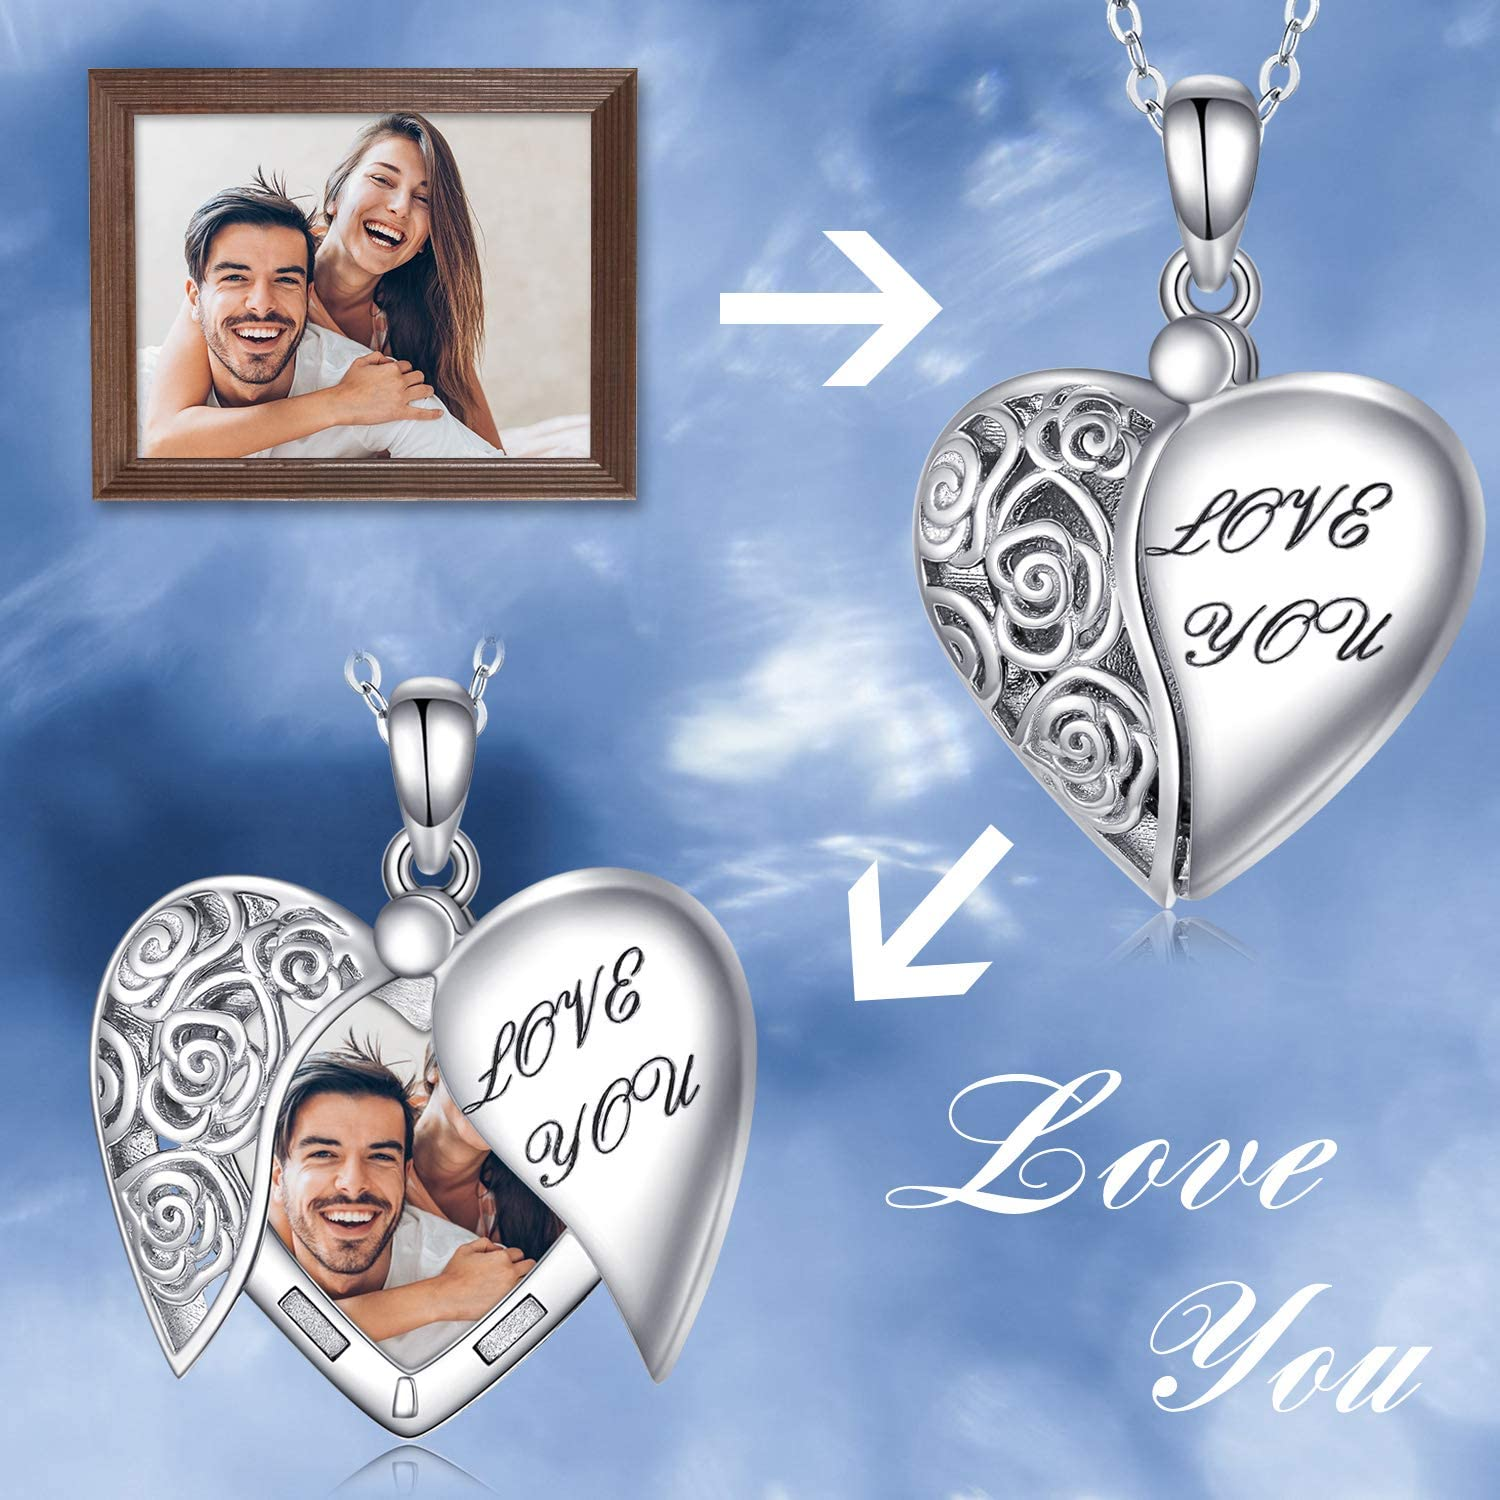 Locket Necklace That Holds Pictures S925 Sterling Silver Rose Flower Locket Necklace Memorial Picture Locket Heart Pendant Jewelry Gift for Women Girlfriend